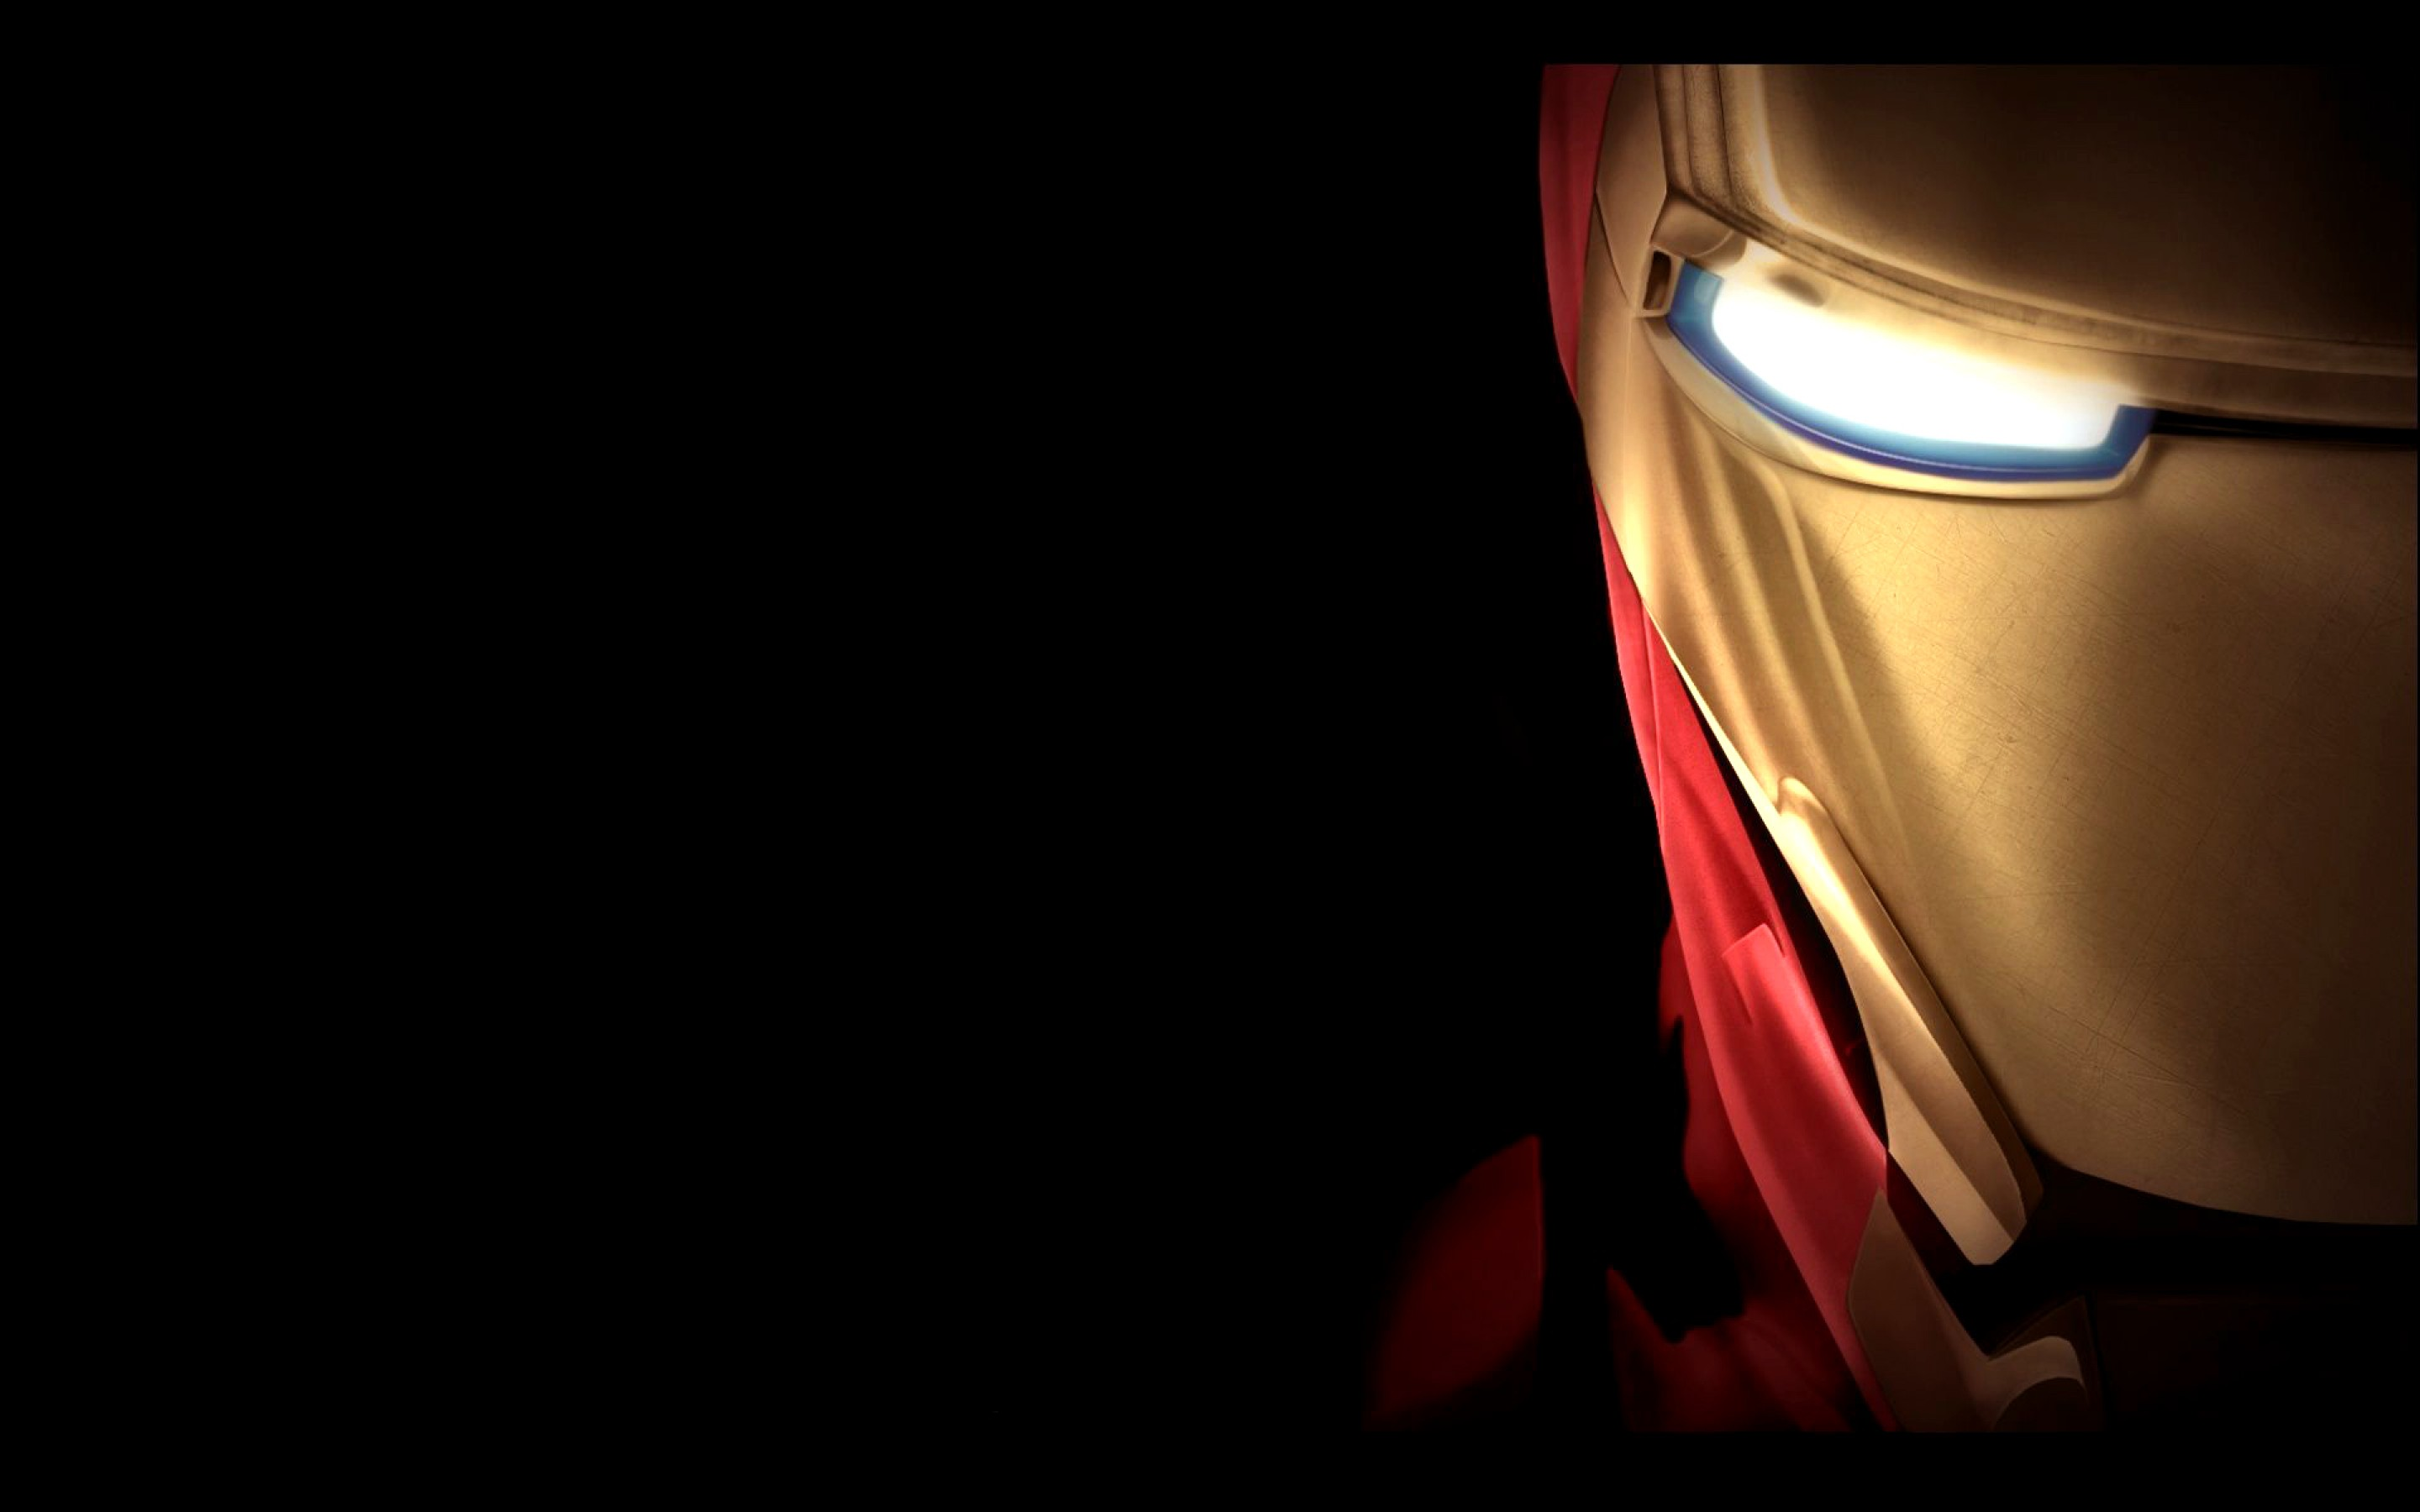 Cool Wallpaper with Iron Man Mask in Close Up and Dark 2880x1800